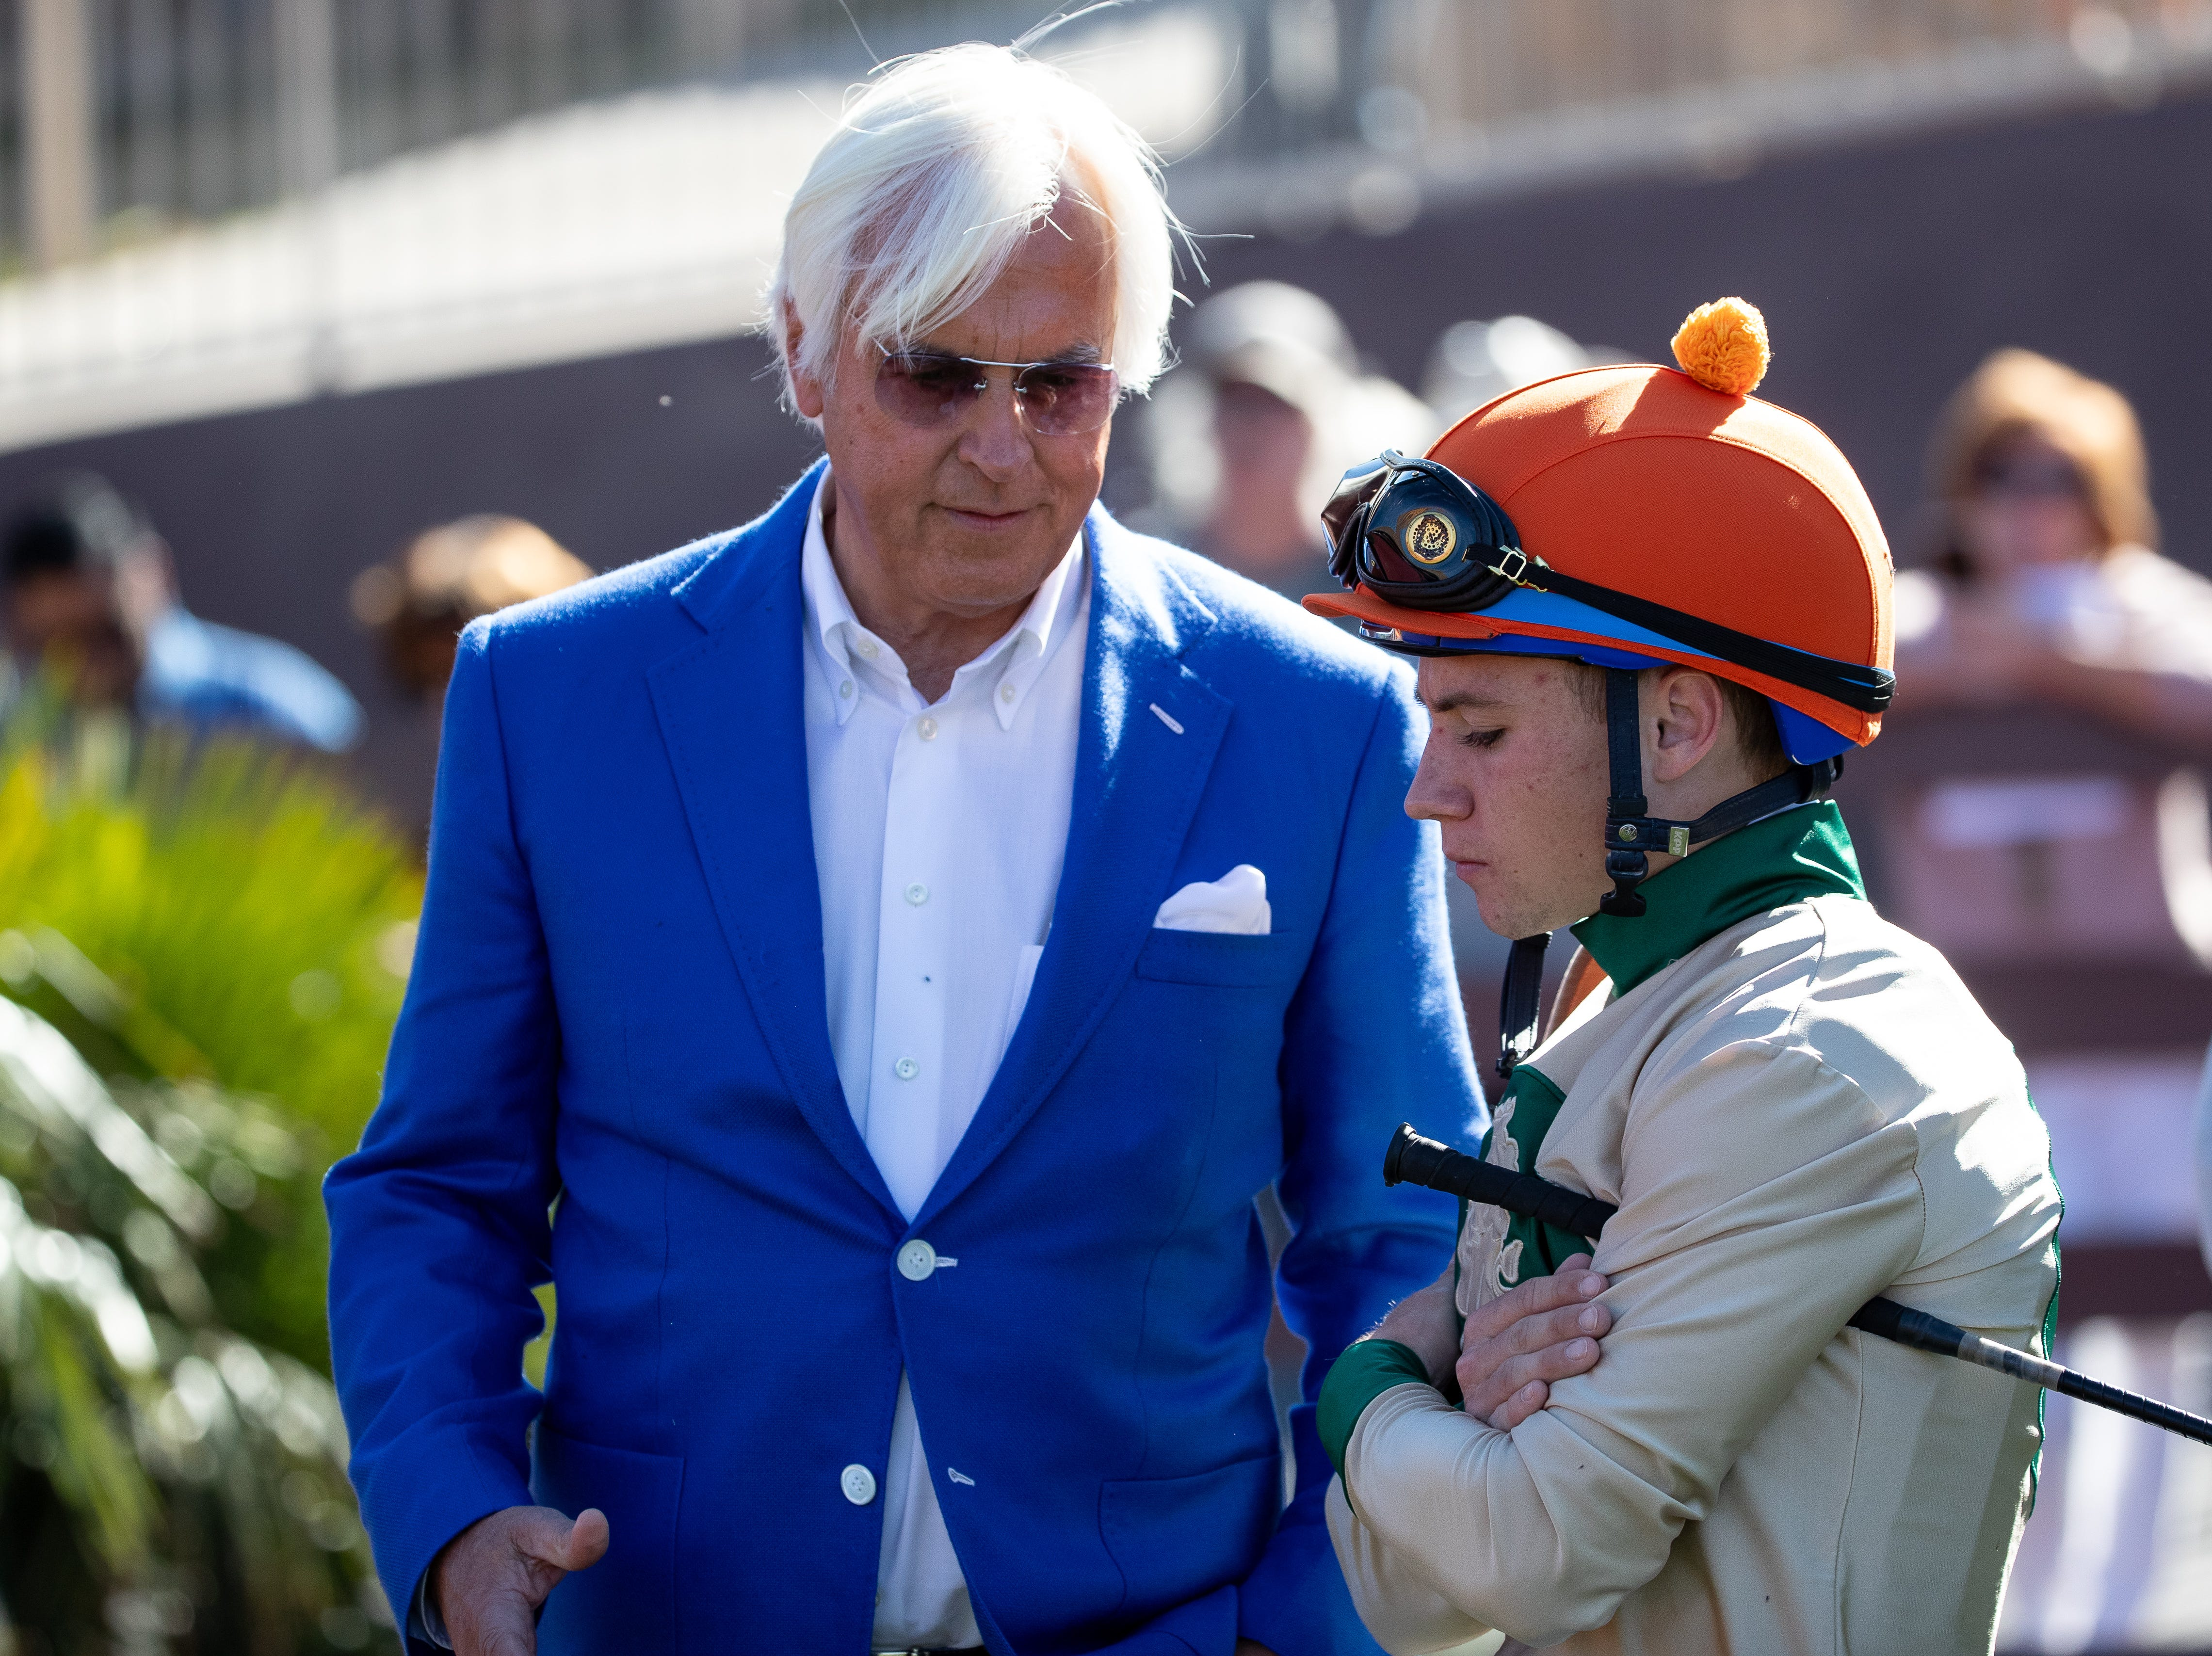 Trainer Bob Baffert's horse Chasing Yesterday wins the Sunland Oaks  at the Sunland Park Racetrack & Casino in New Mexico on Sunday, March 24, 2019